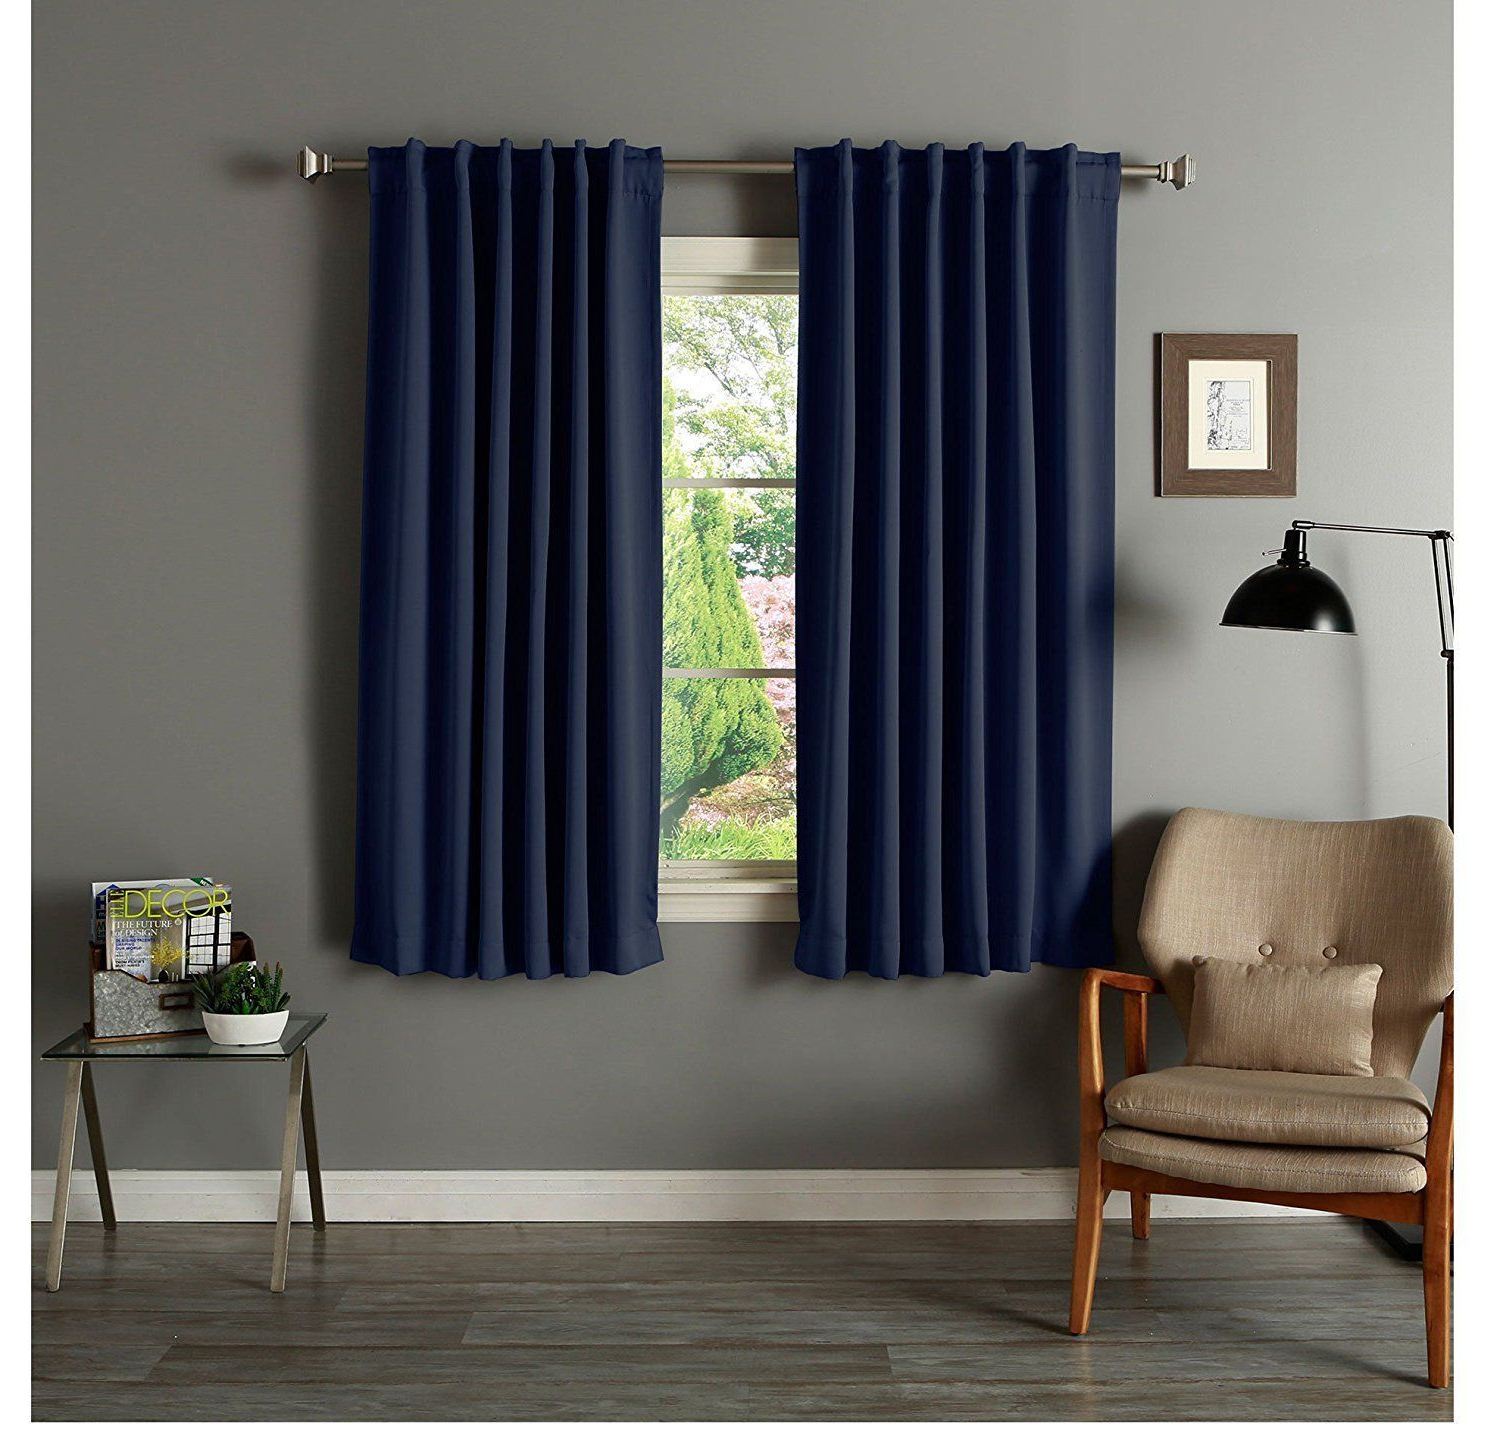 Most Recently Released 63 Inch Girls Navy Solid Color Blackout Curtain Panel Pair For Thermal Rod Pocket Blackout Curtain Panel Pairs (View 6 of 20)